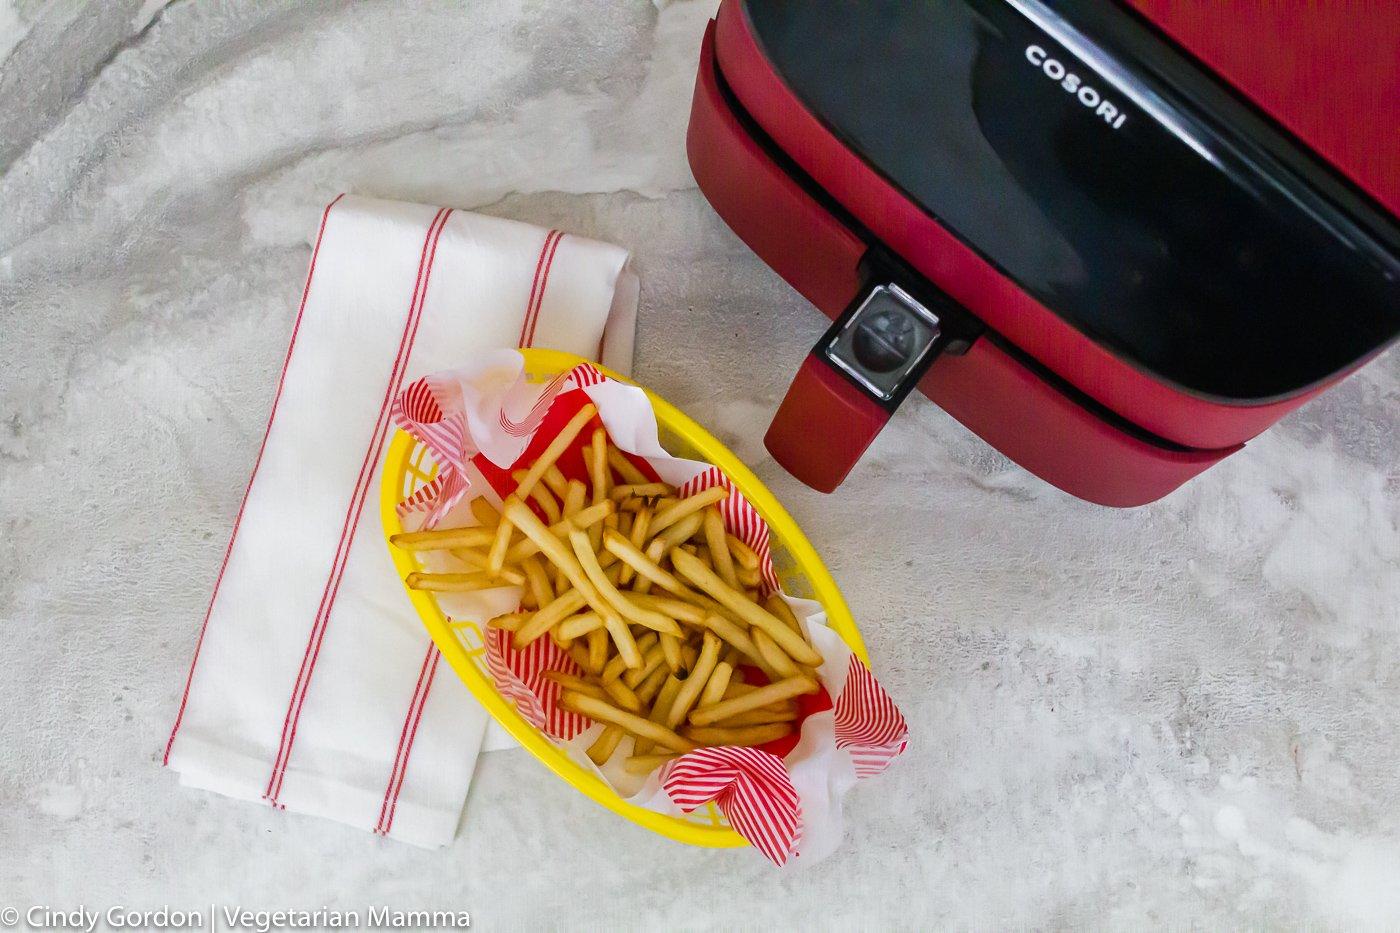 overview of cooked fries and air fryer unit